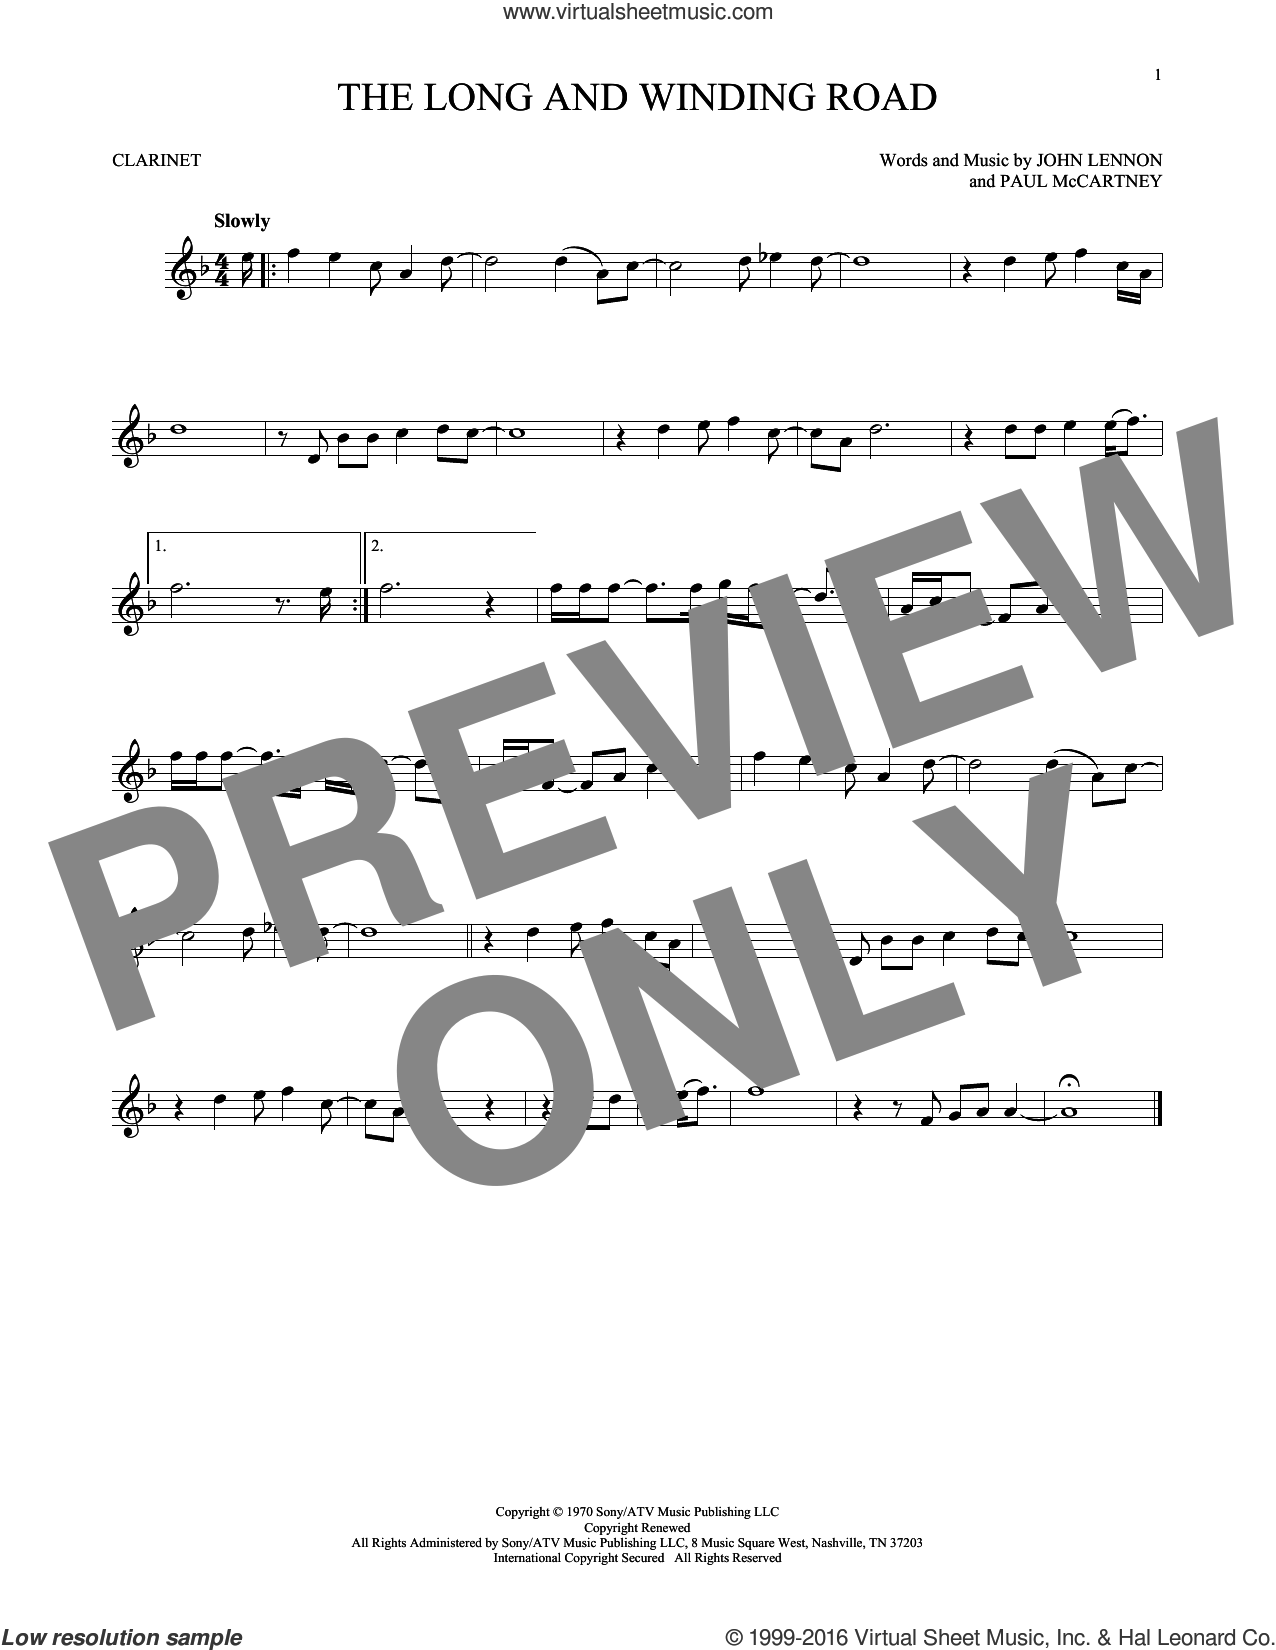 The Long And Winding Road sheet music for clarinet solo by Paul McCartney